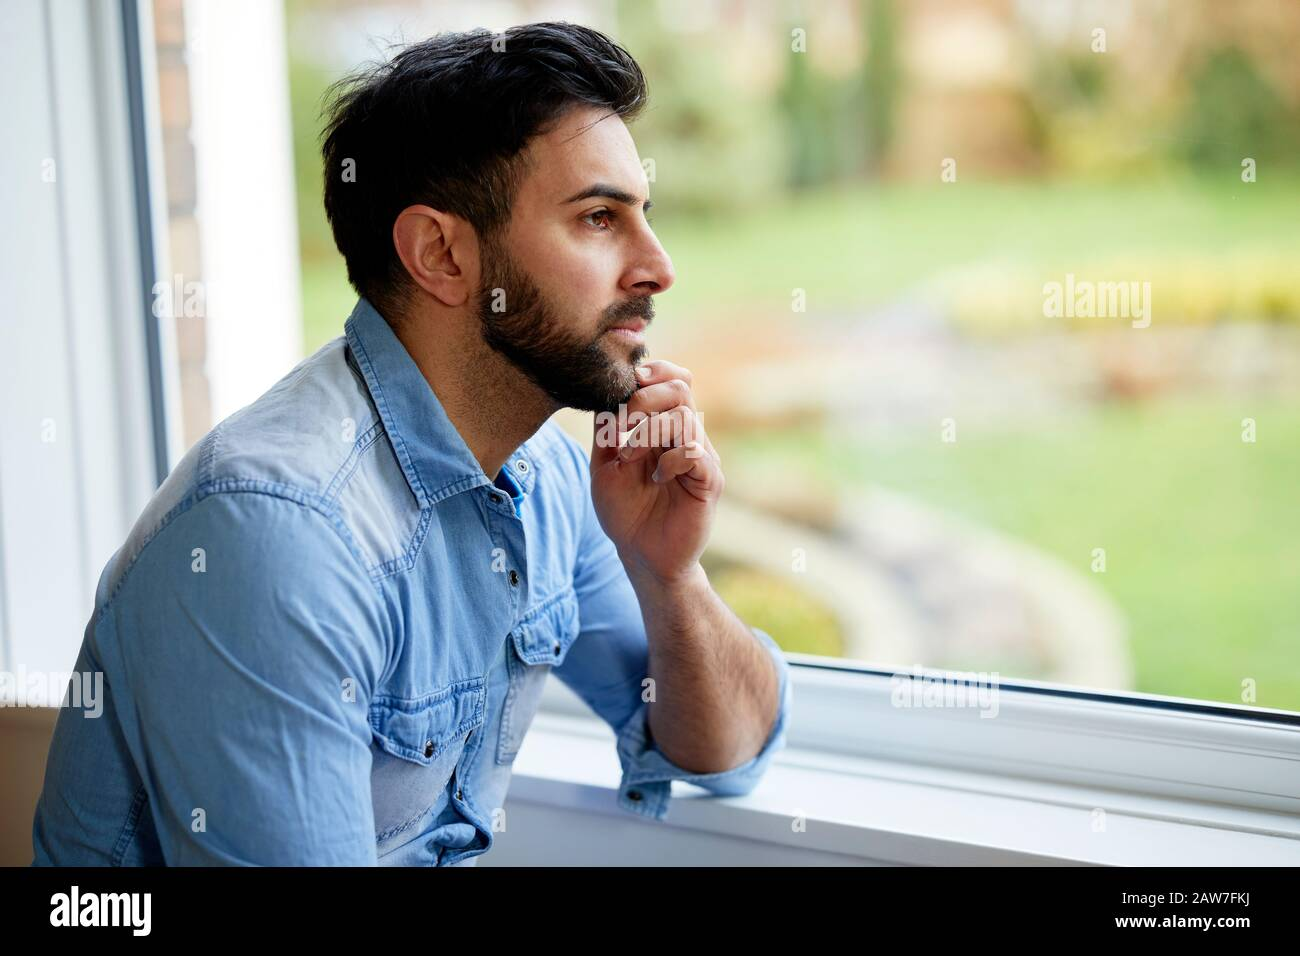 Man looking out of window Stock Photo